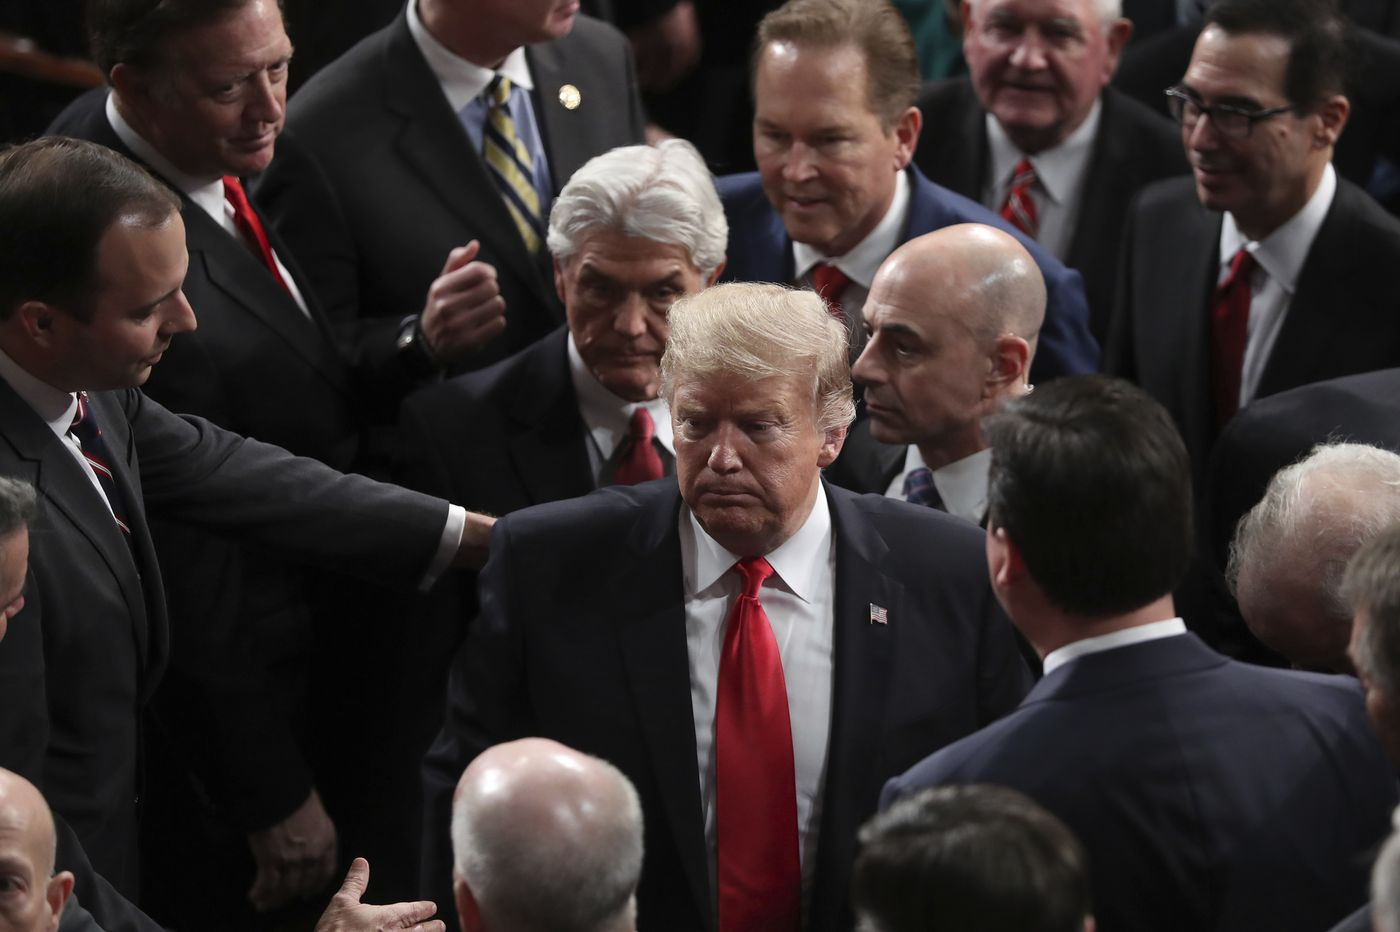 Why Trump downplayed foreign policy in State of Union | Trudy Rubin